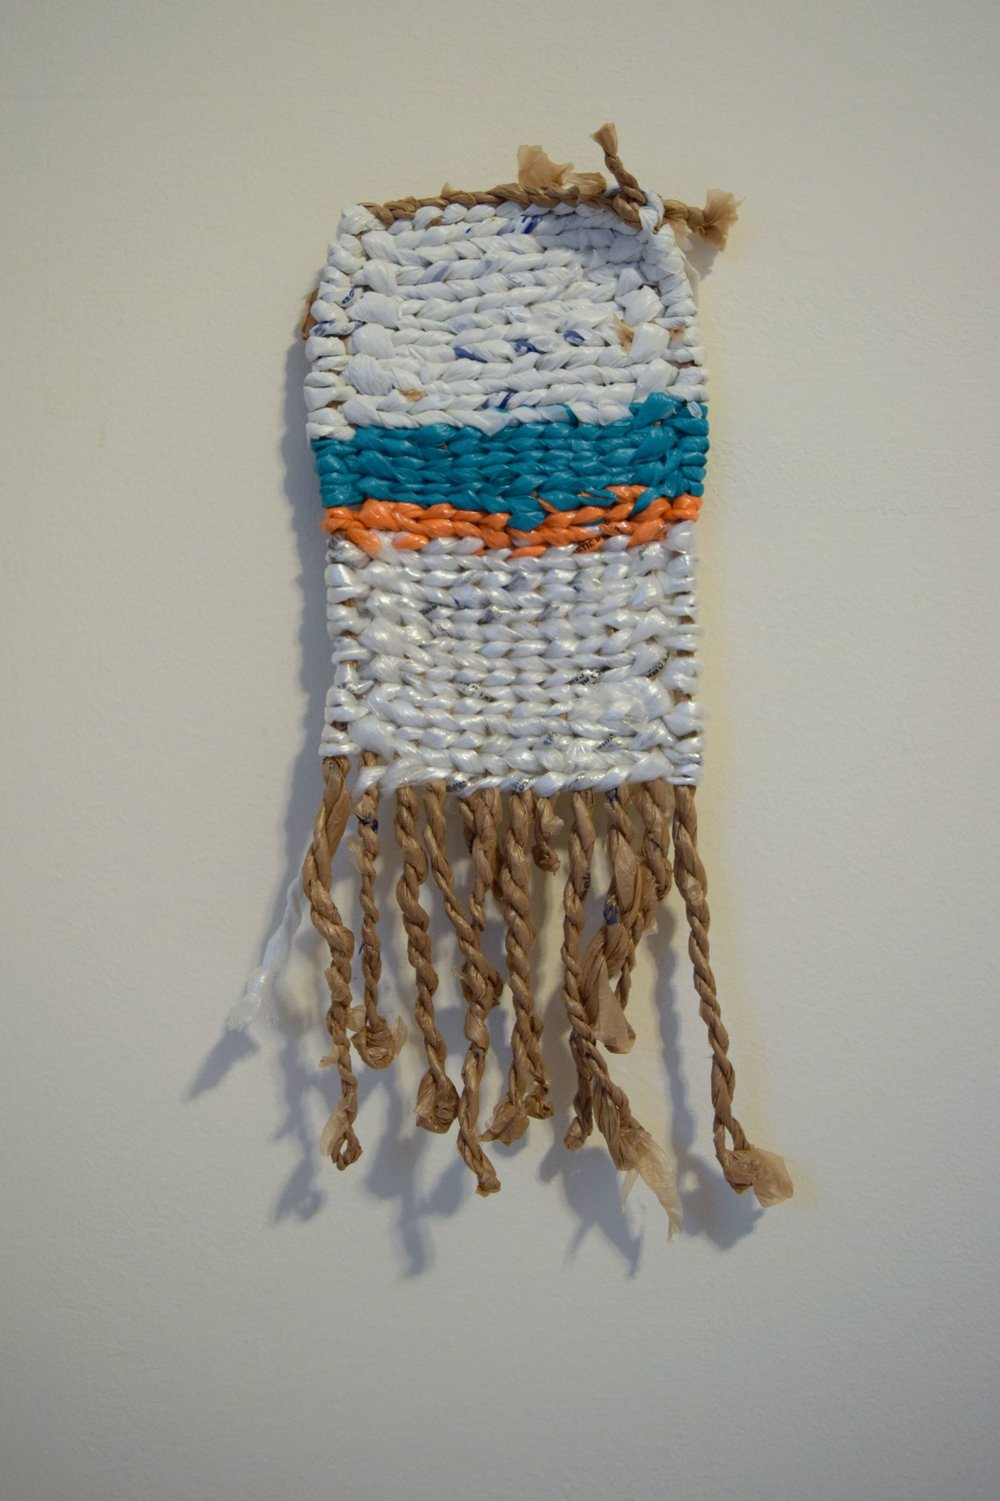 Anita Maharjan ,  Untitled , woven mat with discarded plastic.